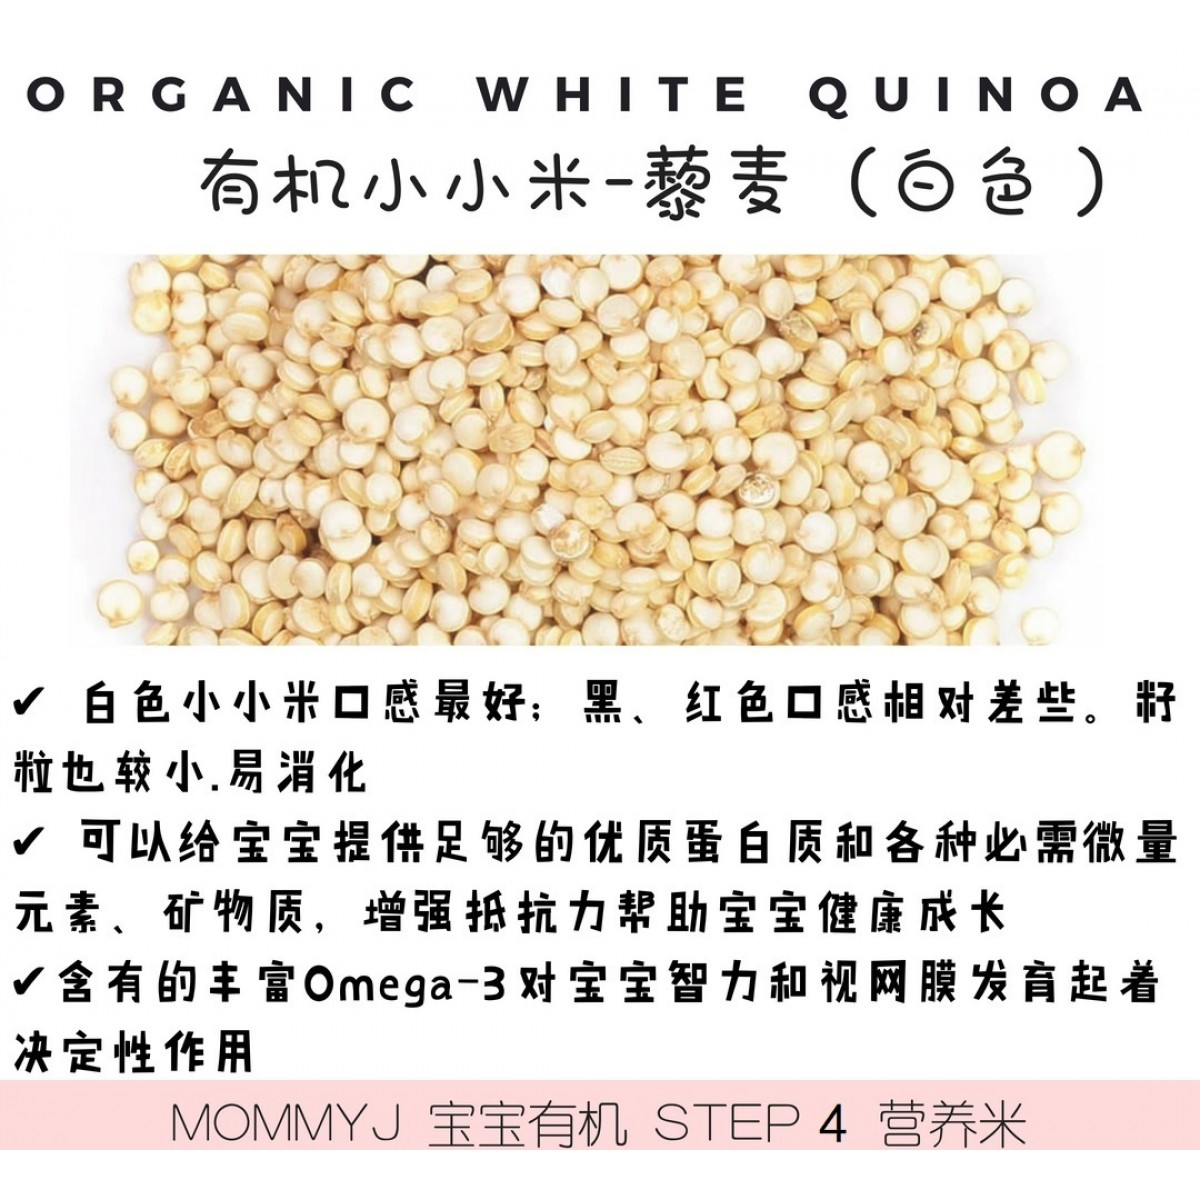 MommyJ Organically Grown Tri-Grain (Rice & Millet & Quinoa) 900g 6m+ FREE PRINTED COOKBOOK FROM MOMMYJ